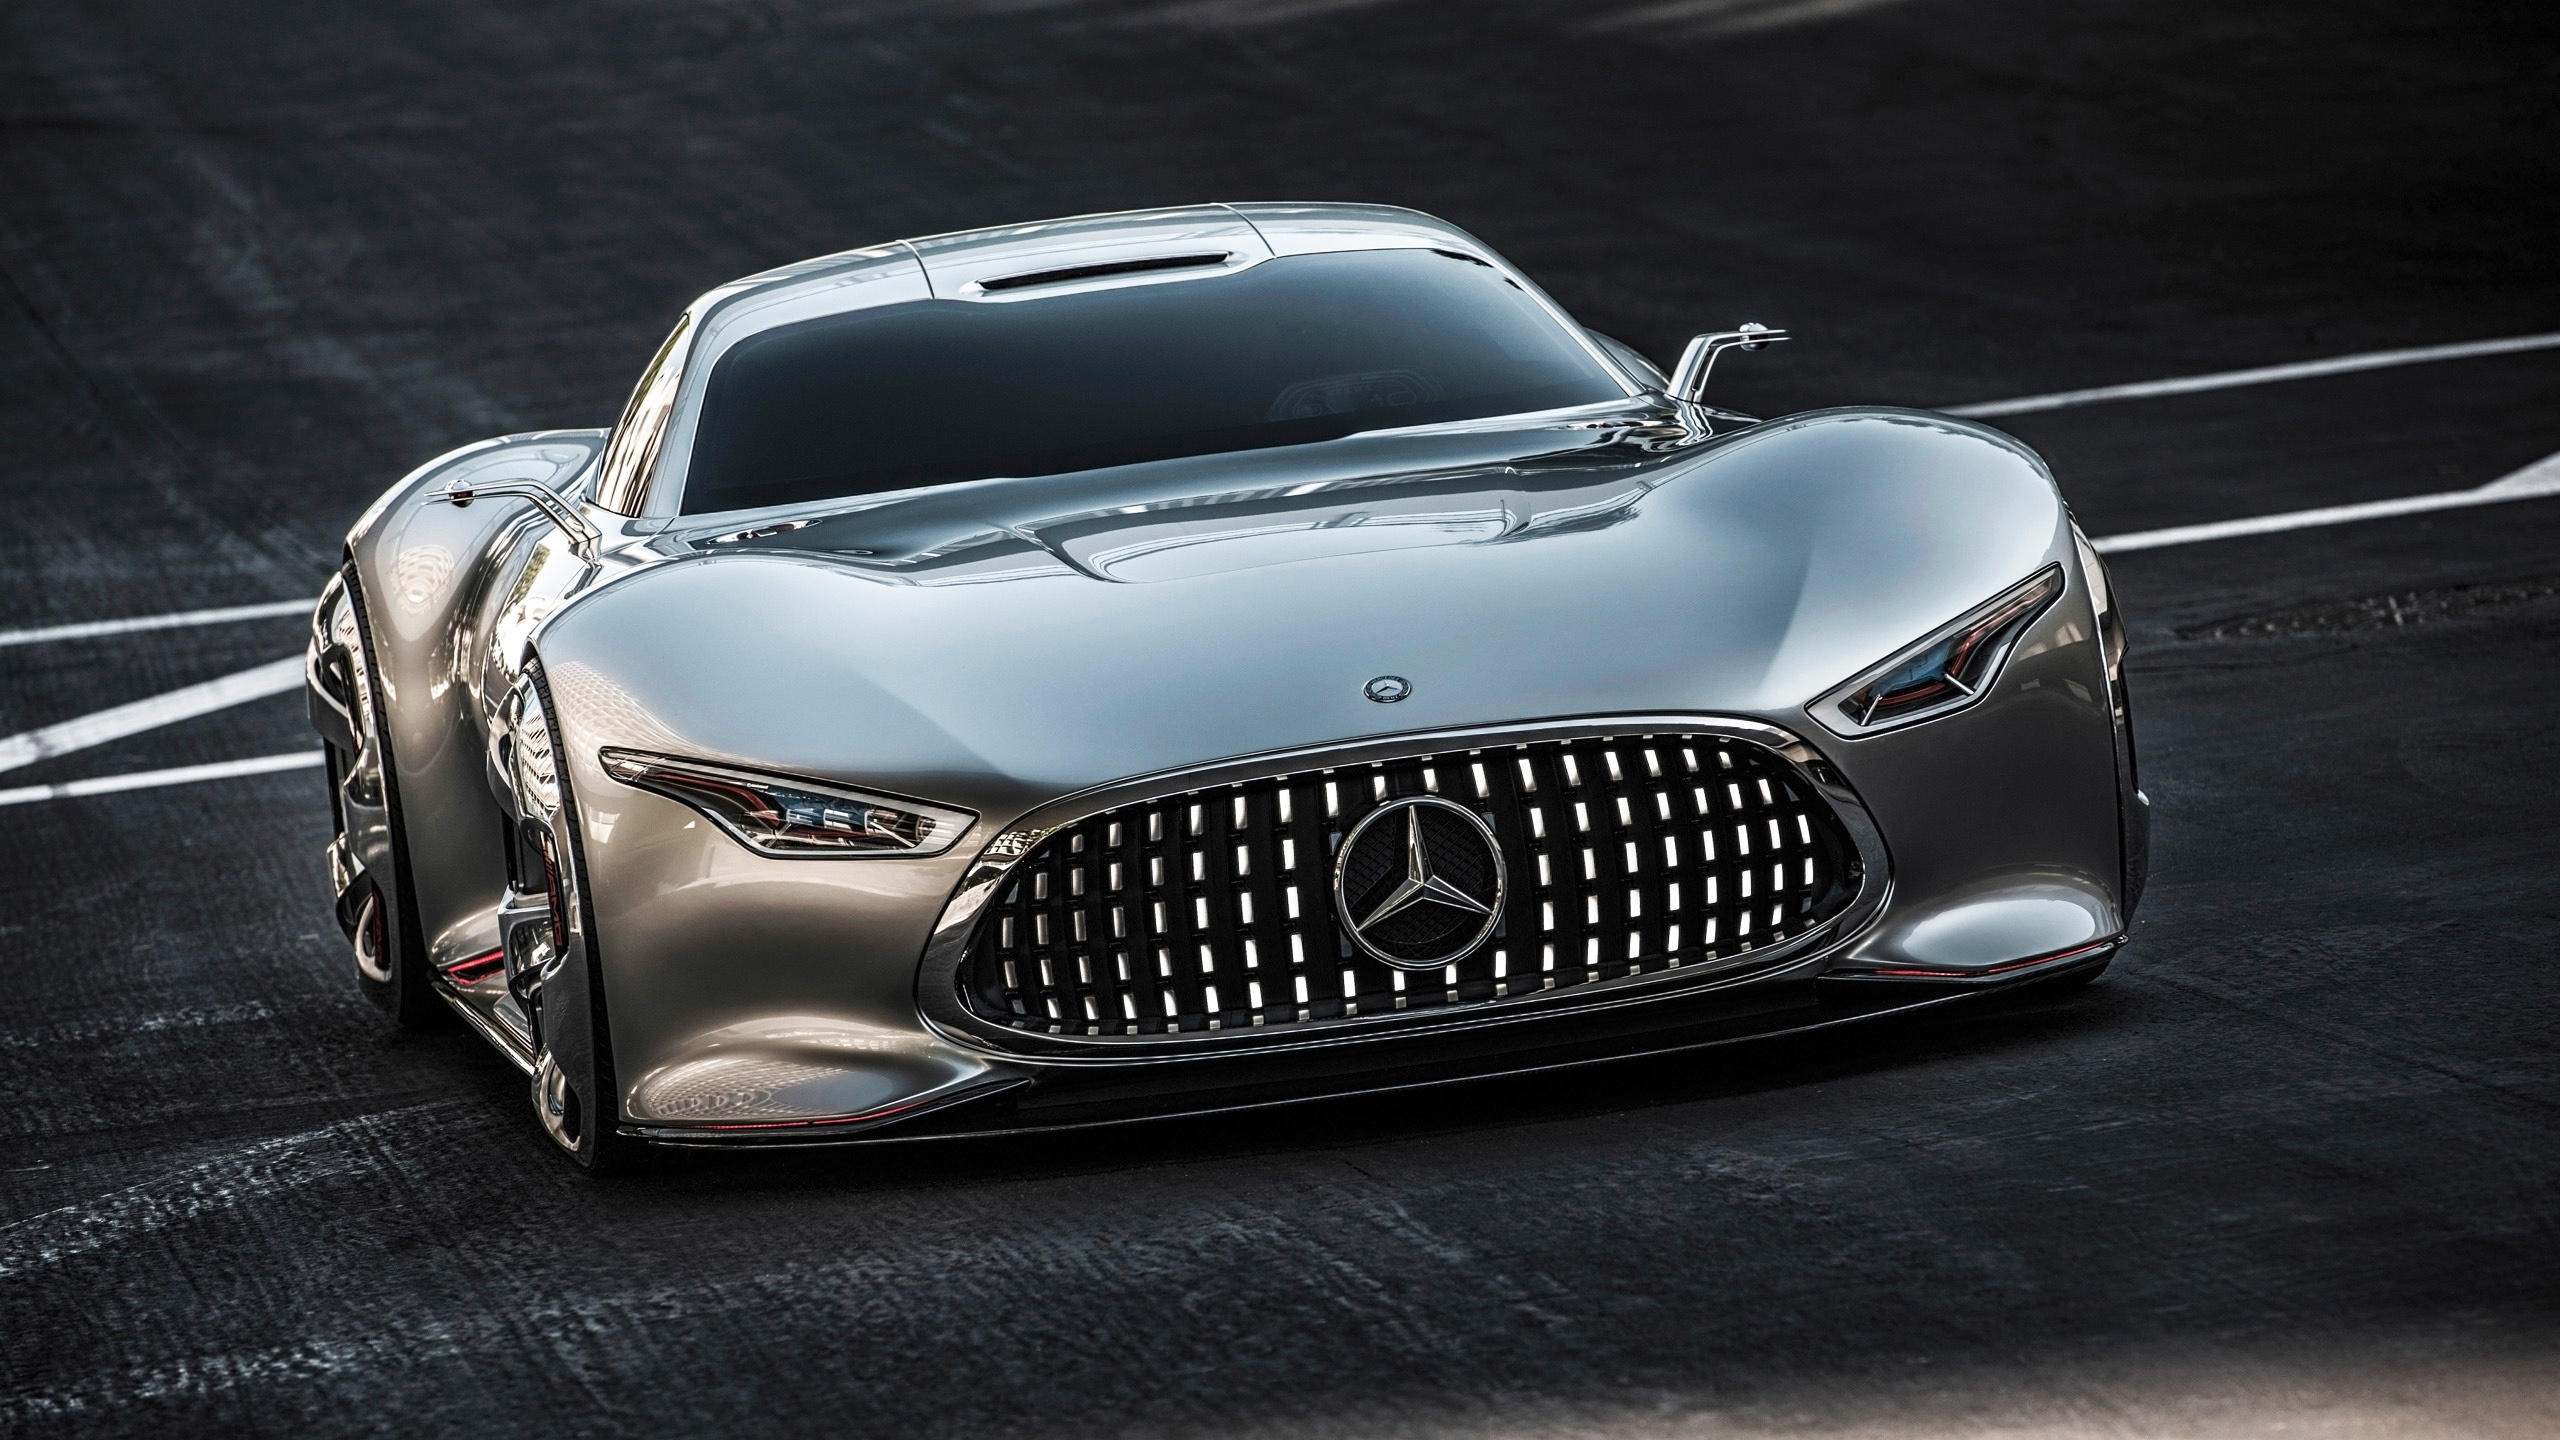 mercedes benz amg vision gran turismo wallpapers in jpg format for